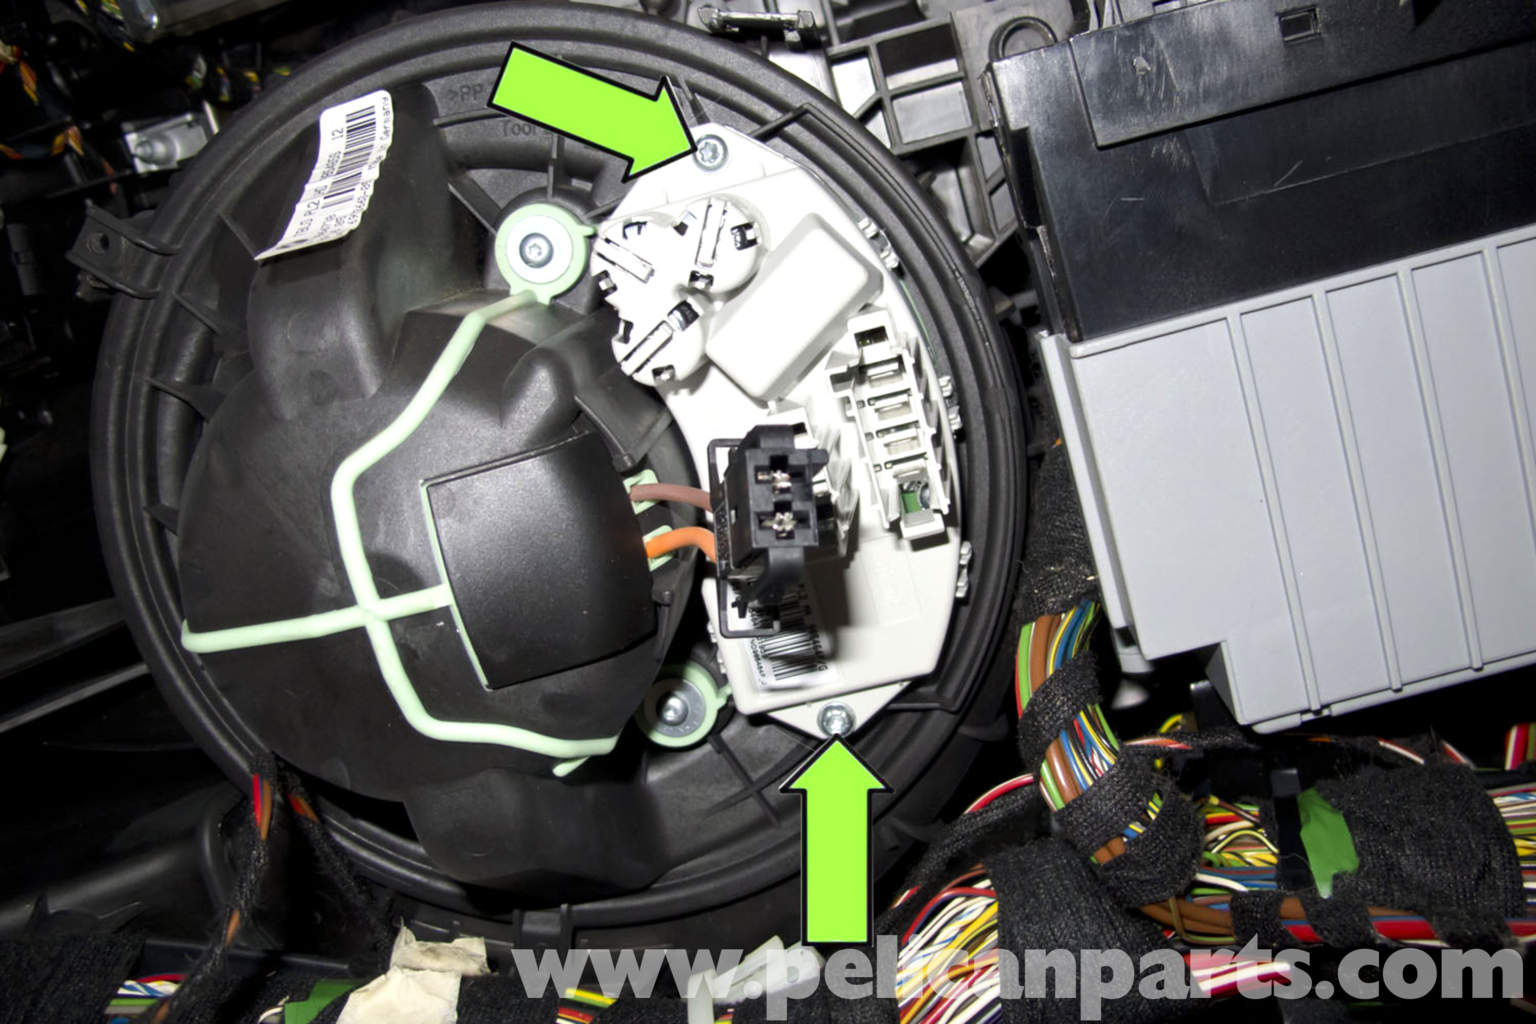 BMW E90 Blower Motor Replacement   E91  E92  E93   Pelican Parts DIY Maintenance Article